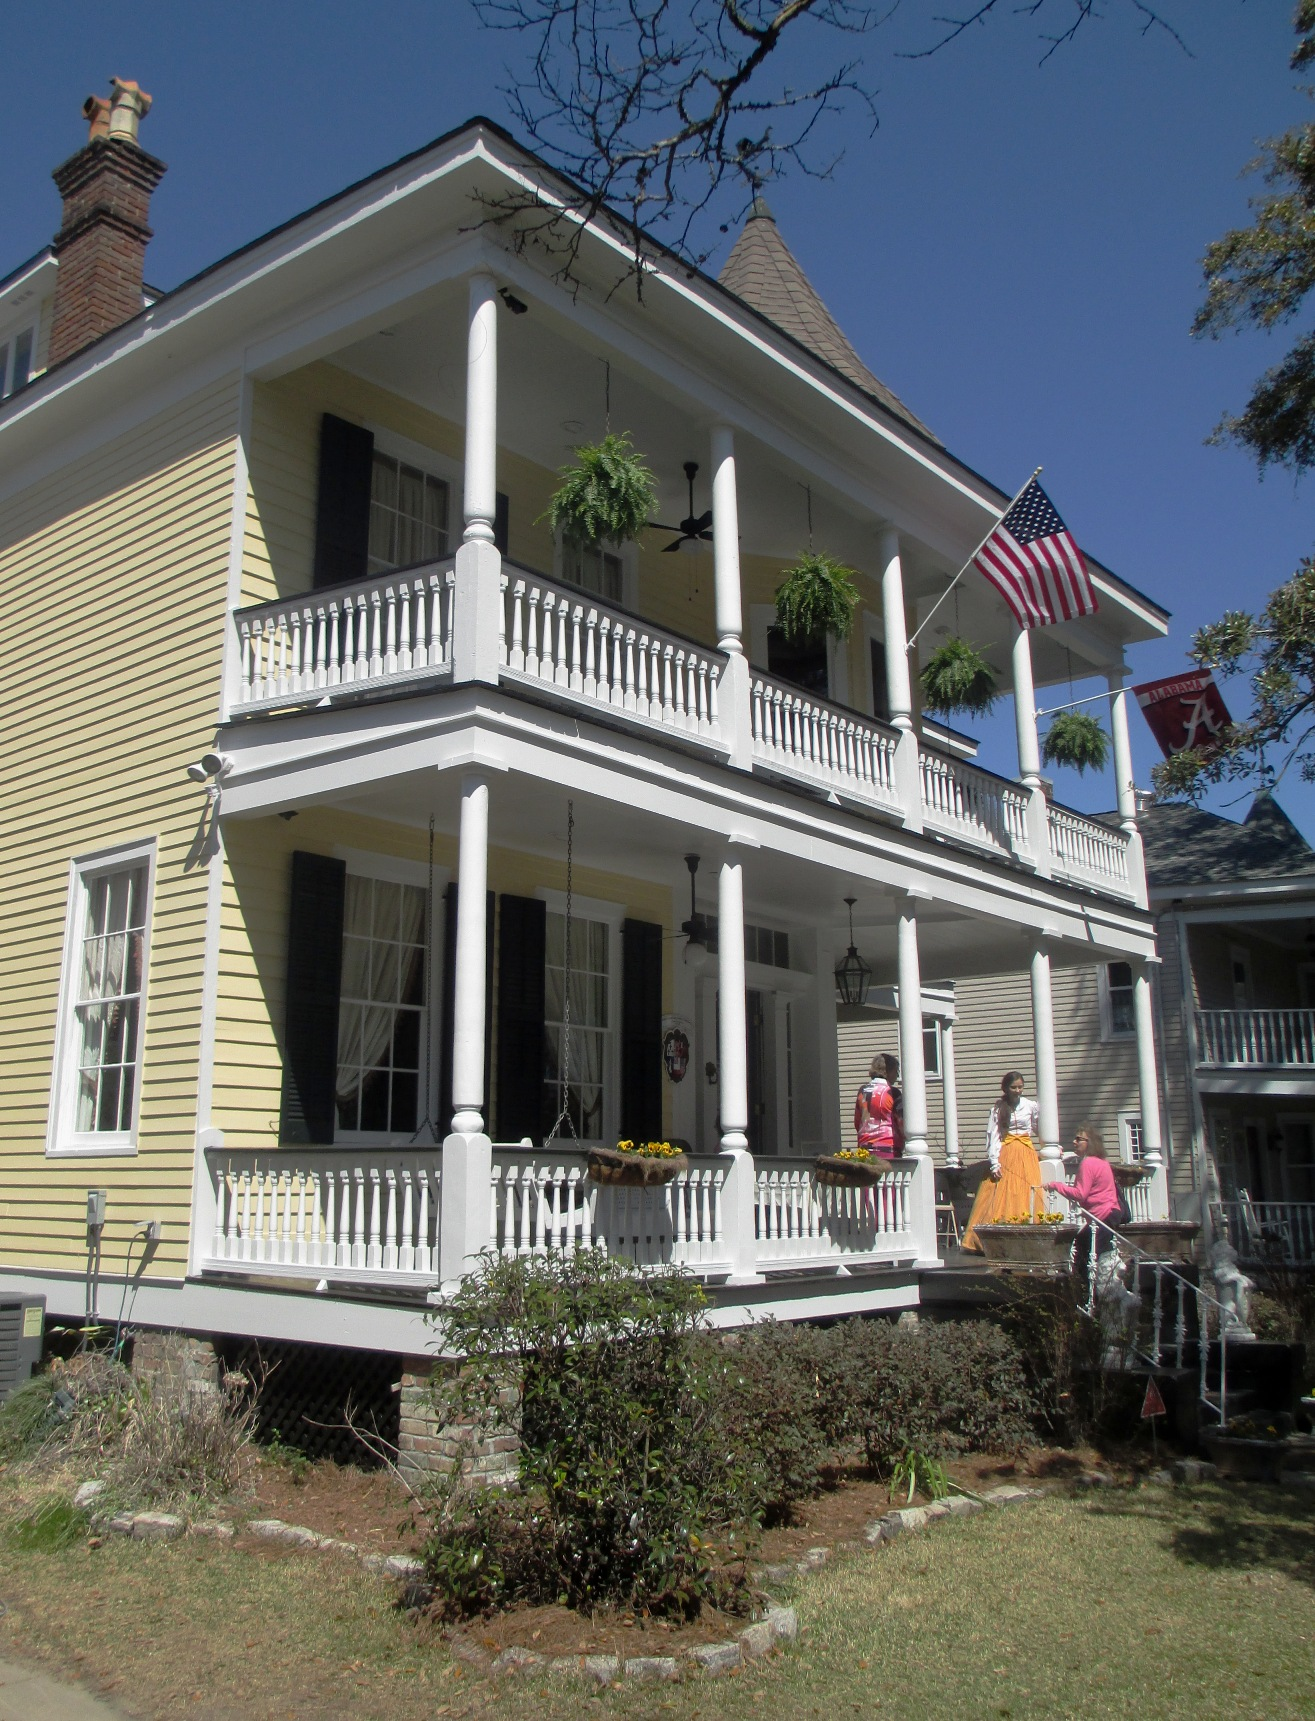 Mobile alabama home tour 2014 historic house colors for House builders in alabama